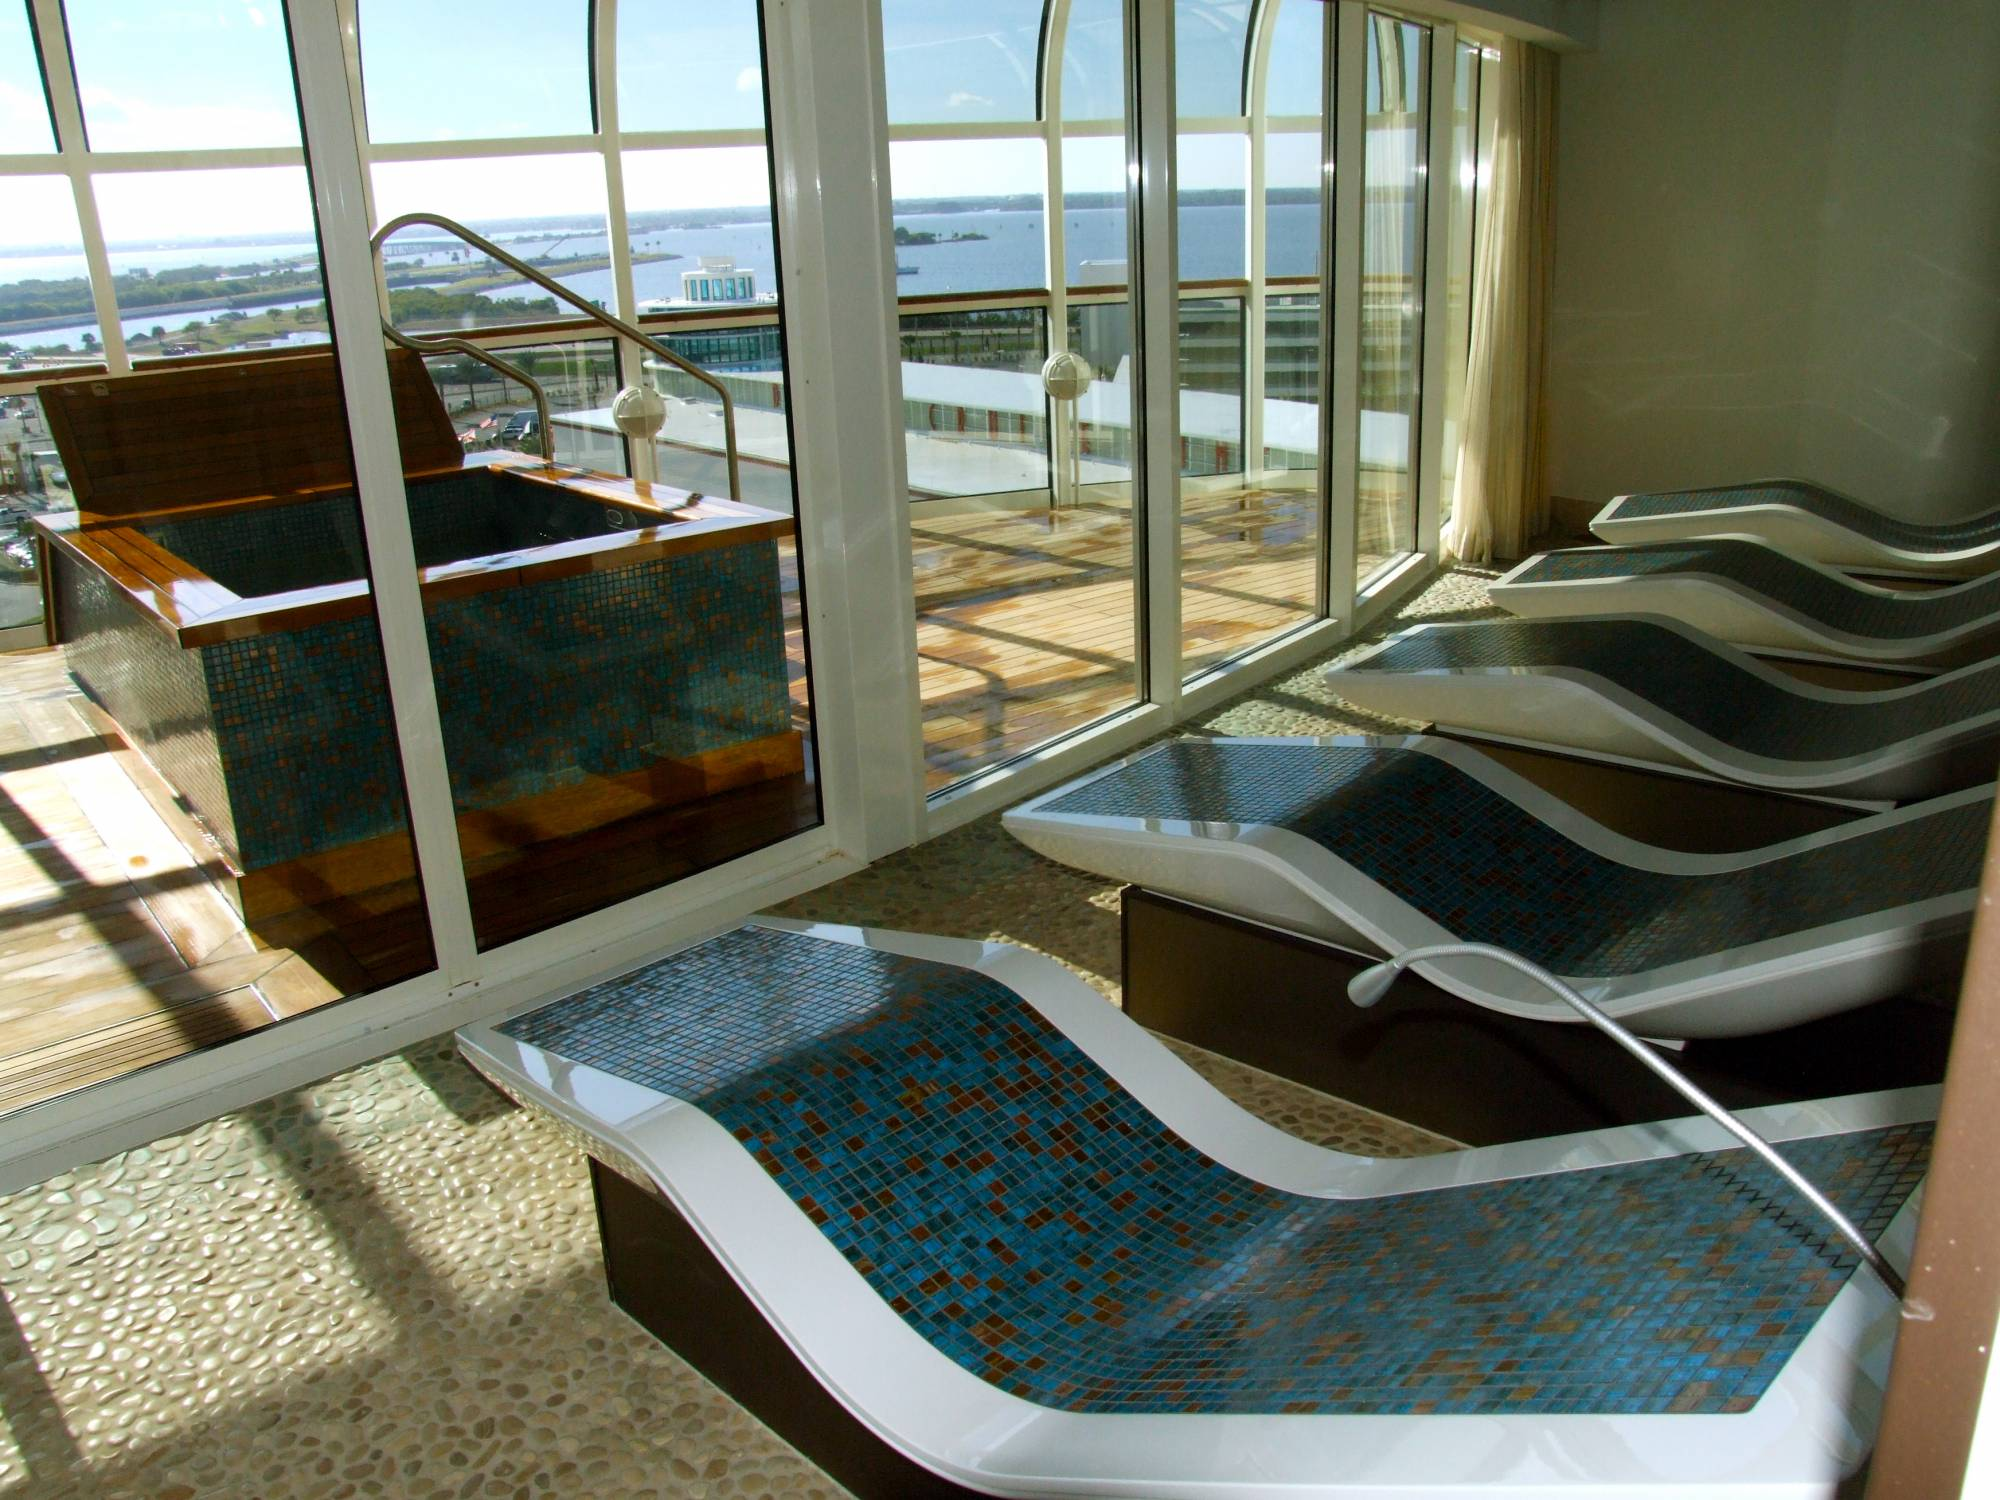 Rainforest Loungers at Senses Spa - Disney Dream photo